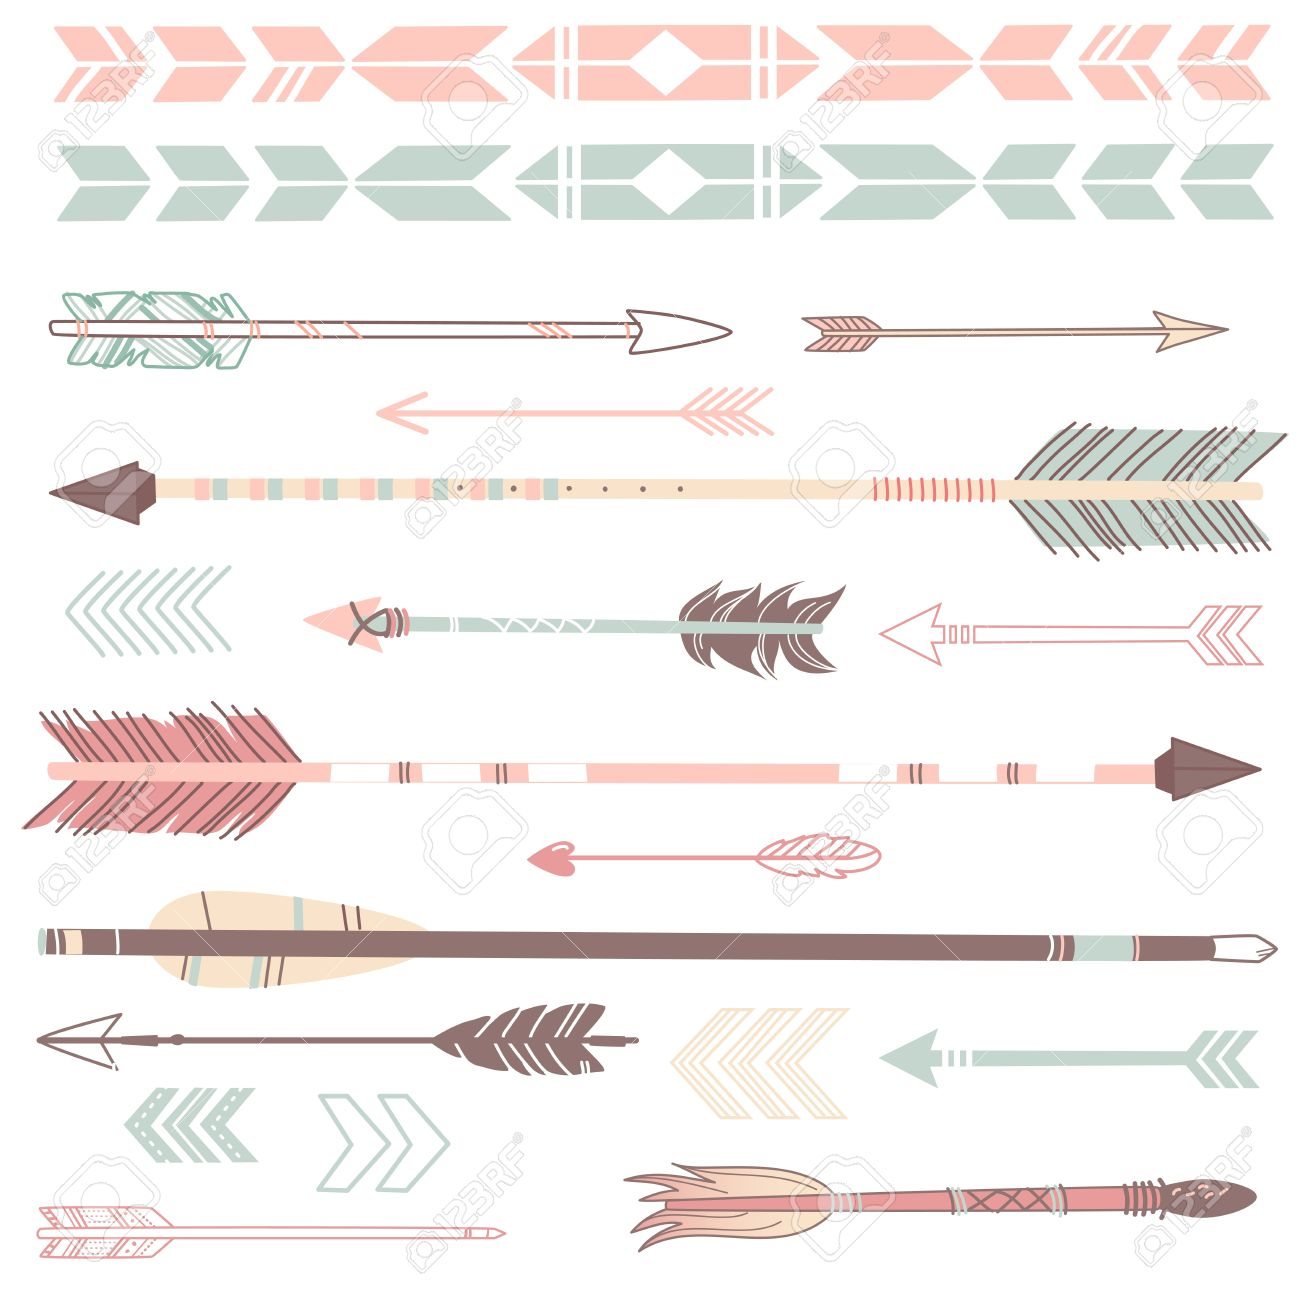 stock vector illustration. Bow and arrow cute clipart